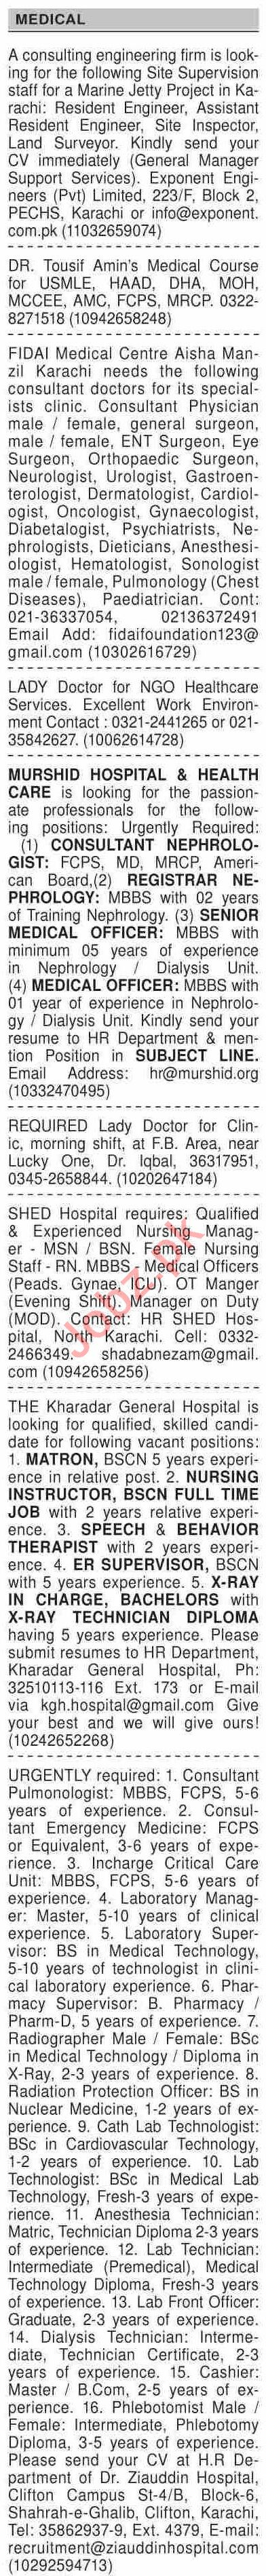 Dawn Sunday Classified Ads 21st Feb 2021 for Medical Staff